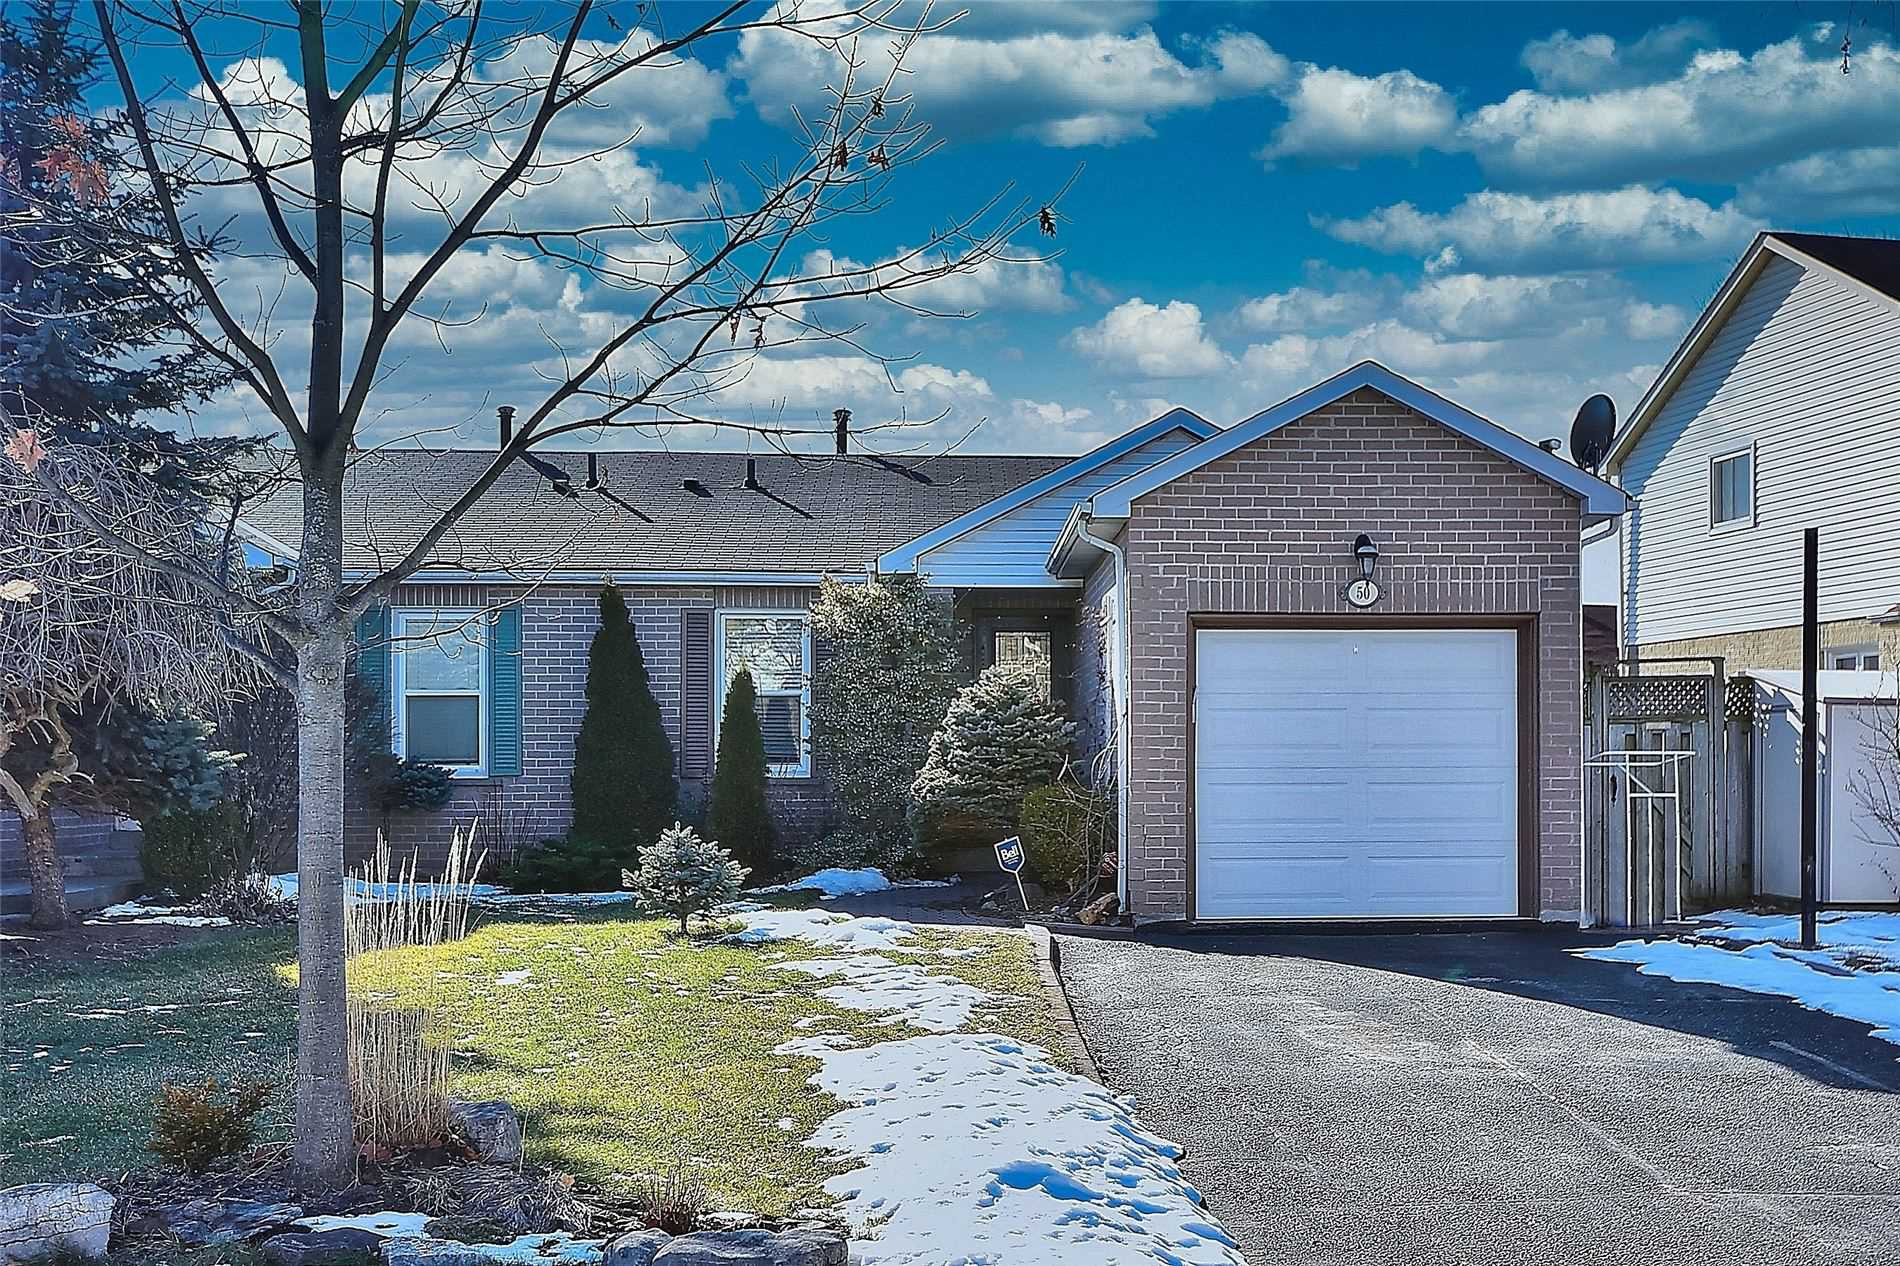 Main Photo: 50 Hawkins Crescent in Ajax: South West House (Bungalow) for sale : MLS®# E4681772